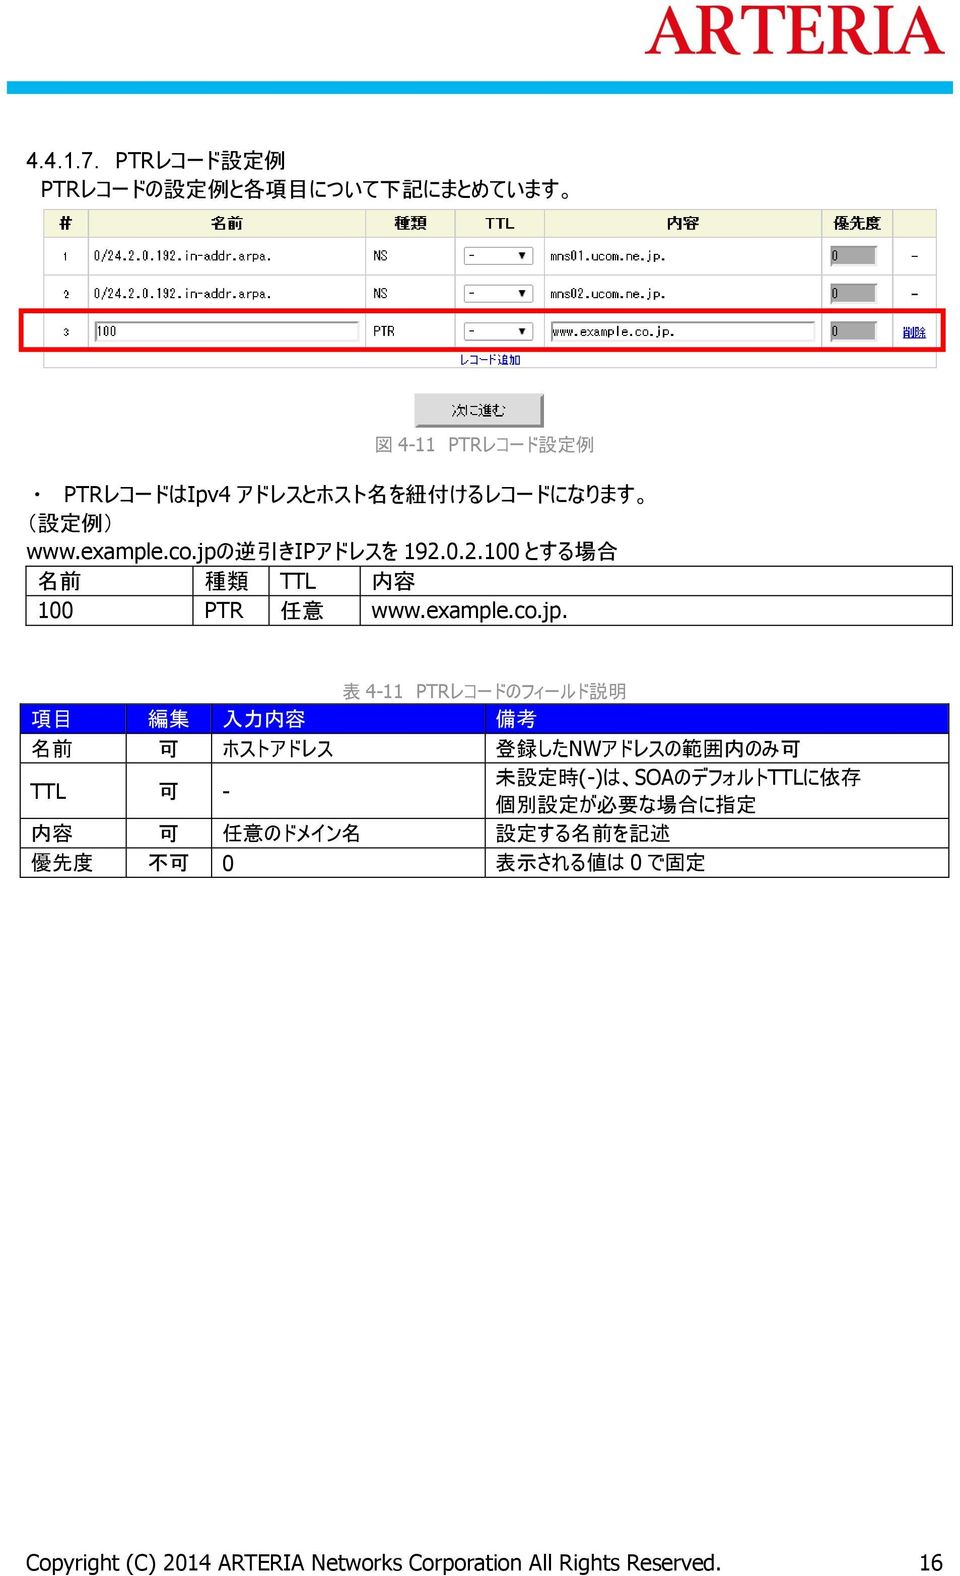 www.example.co.jpの